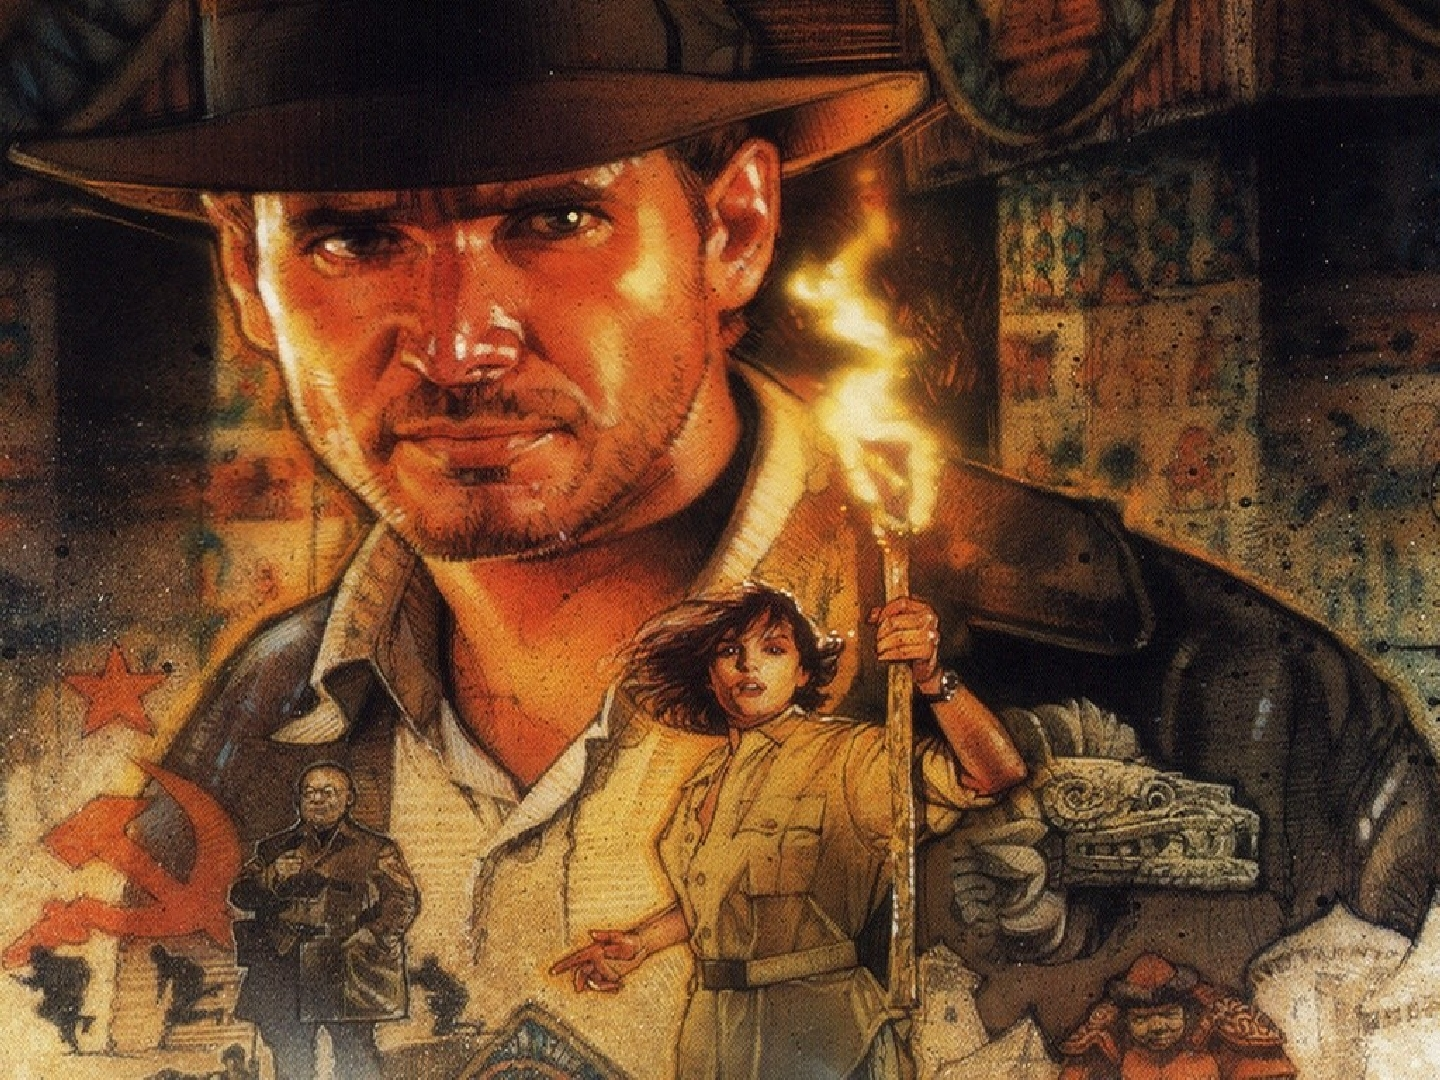 Raiders Of The Lost Ark HD Wallpaper Background Images 1440x1080